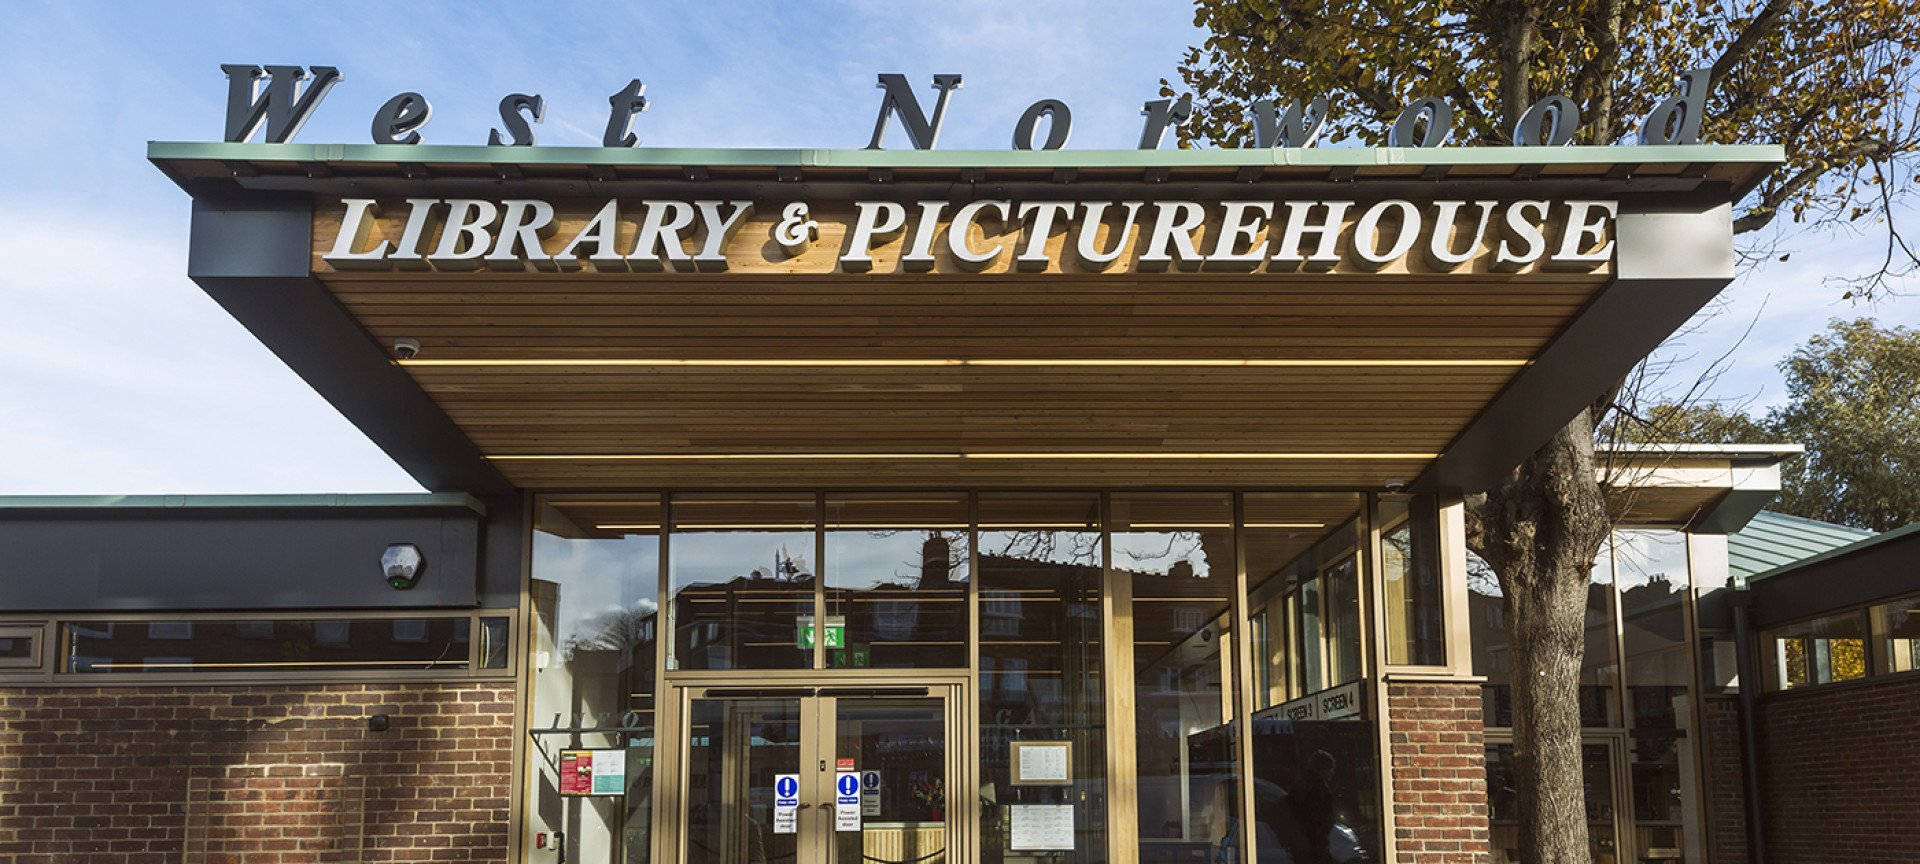 Welcome To<br>West Norwood Library & Picturehouse